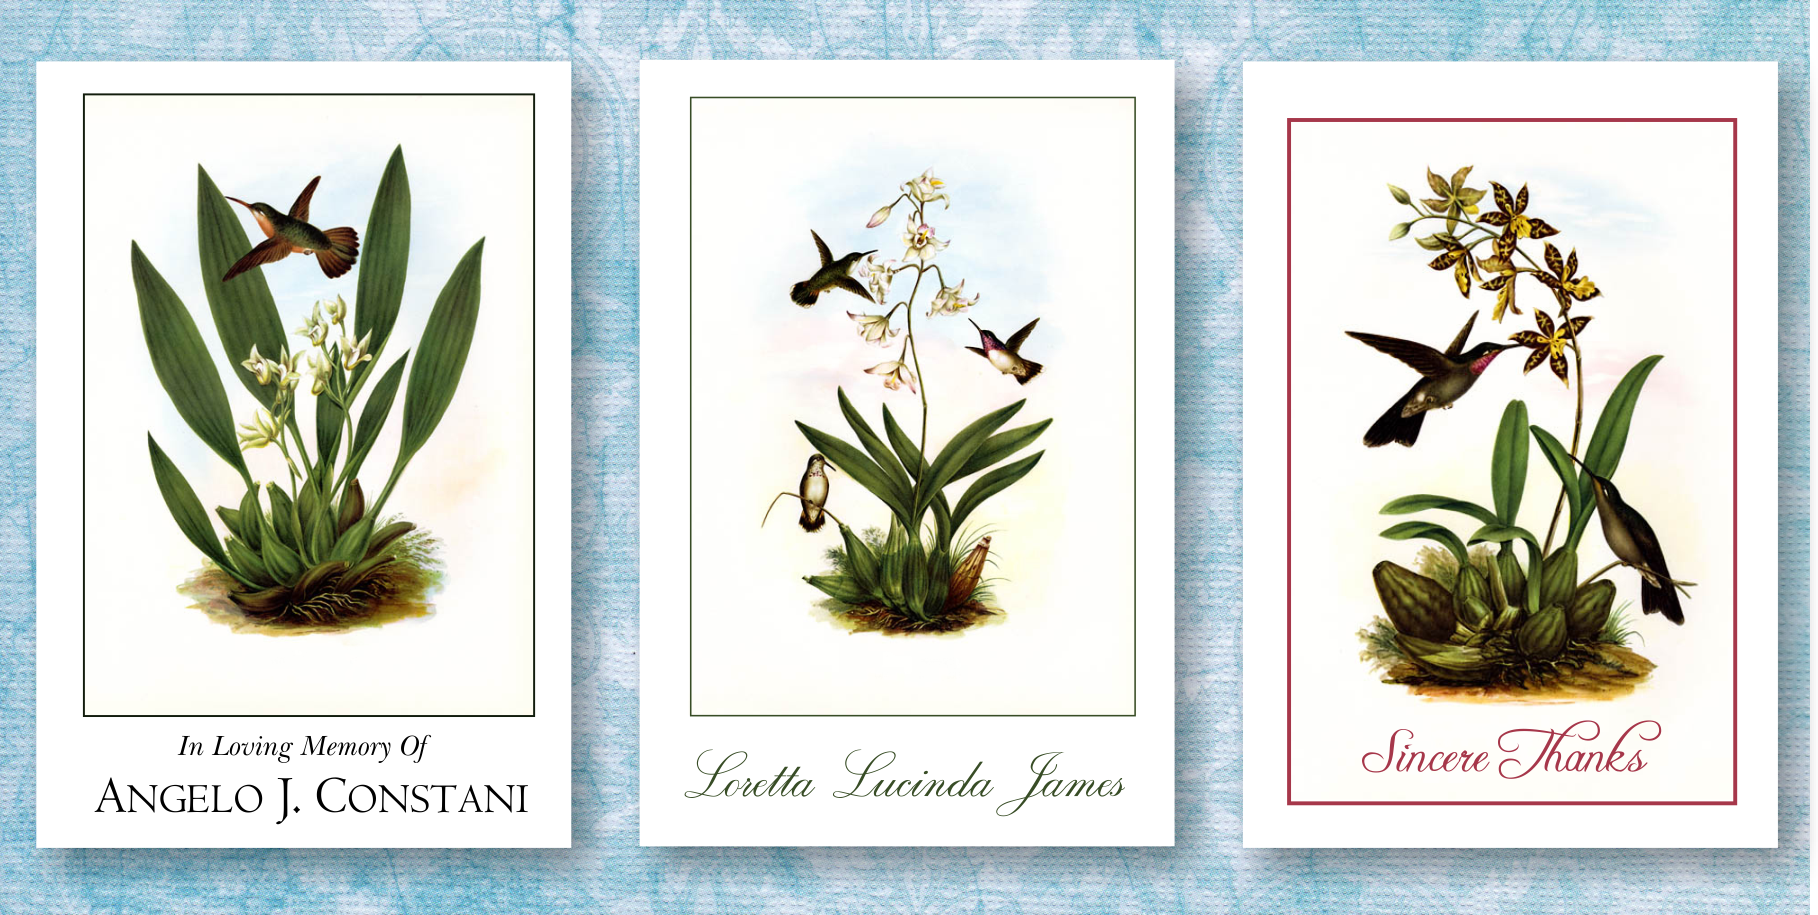 Funeral thank you cards beautiful vintage hummingbird memorial funeral thank you cards printed in australia izmirmasajfo Choice Image